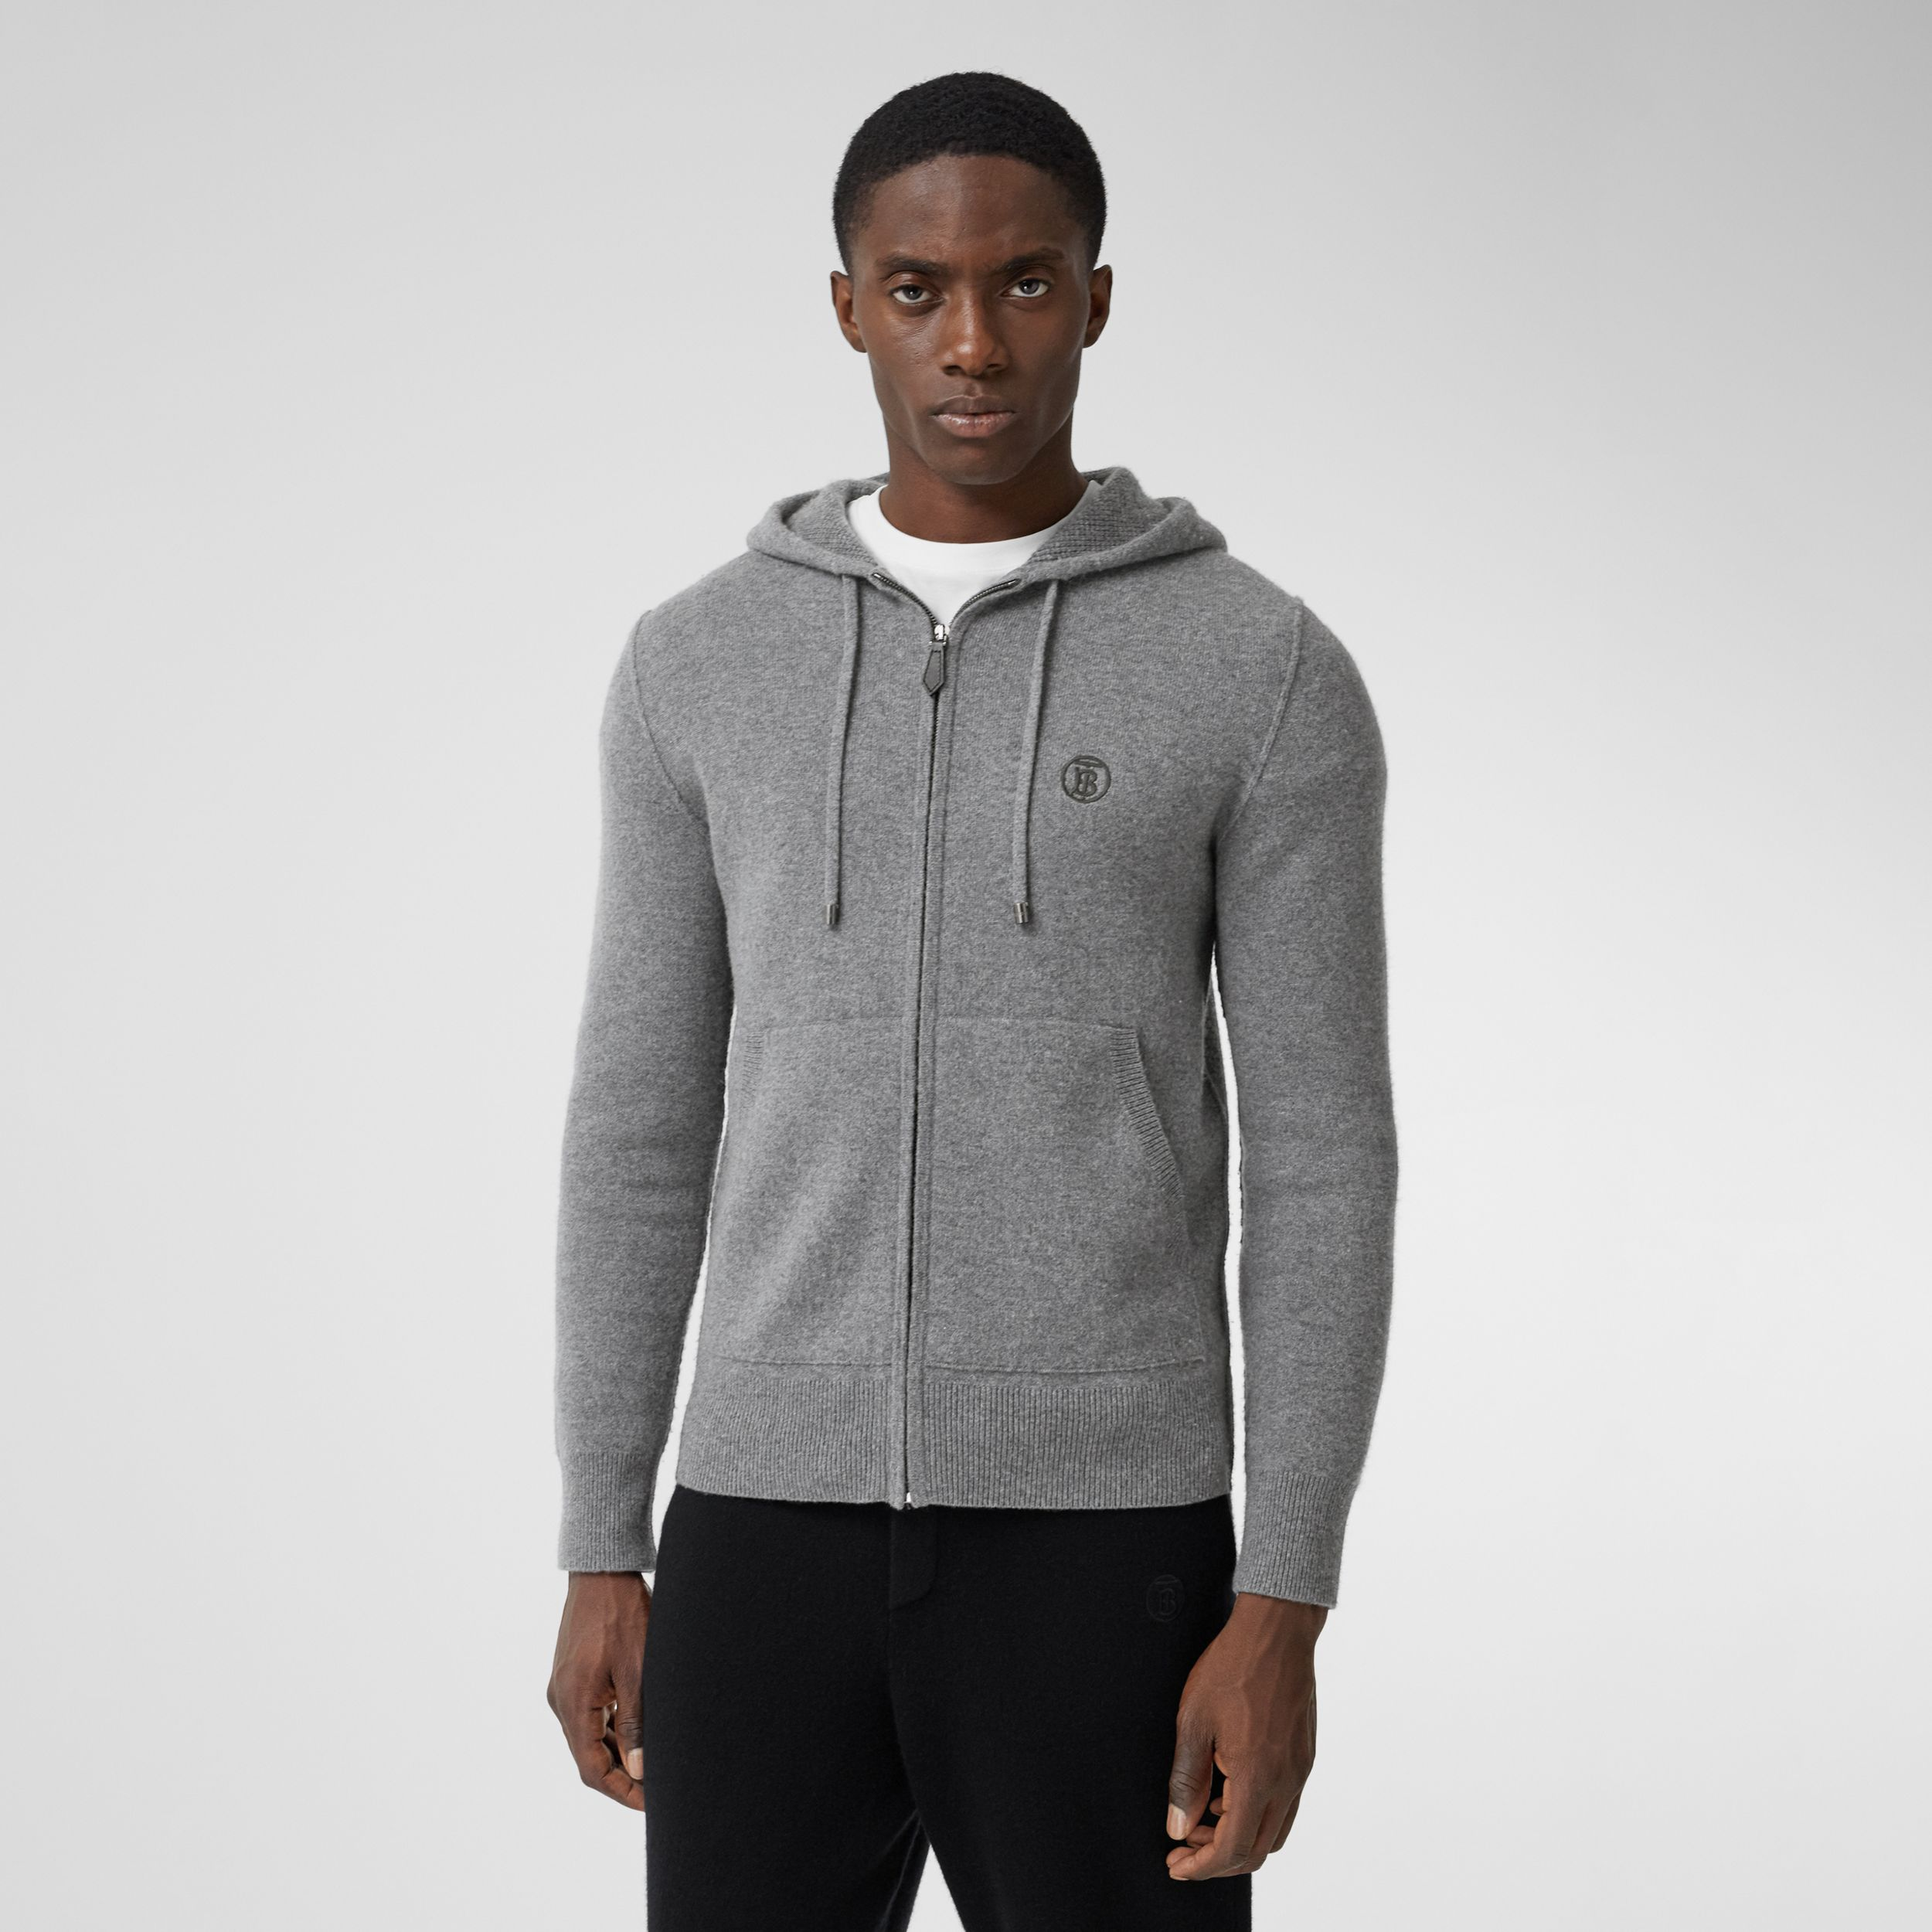 Monogram Motif Cashmere Blend Hooded Top in Mid Grey Melange - Men | Burberry Hong Kong S.A.R. - 1